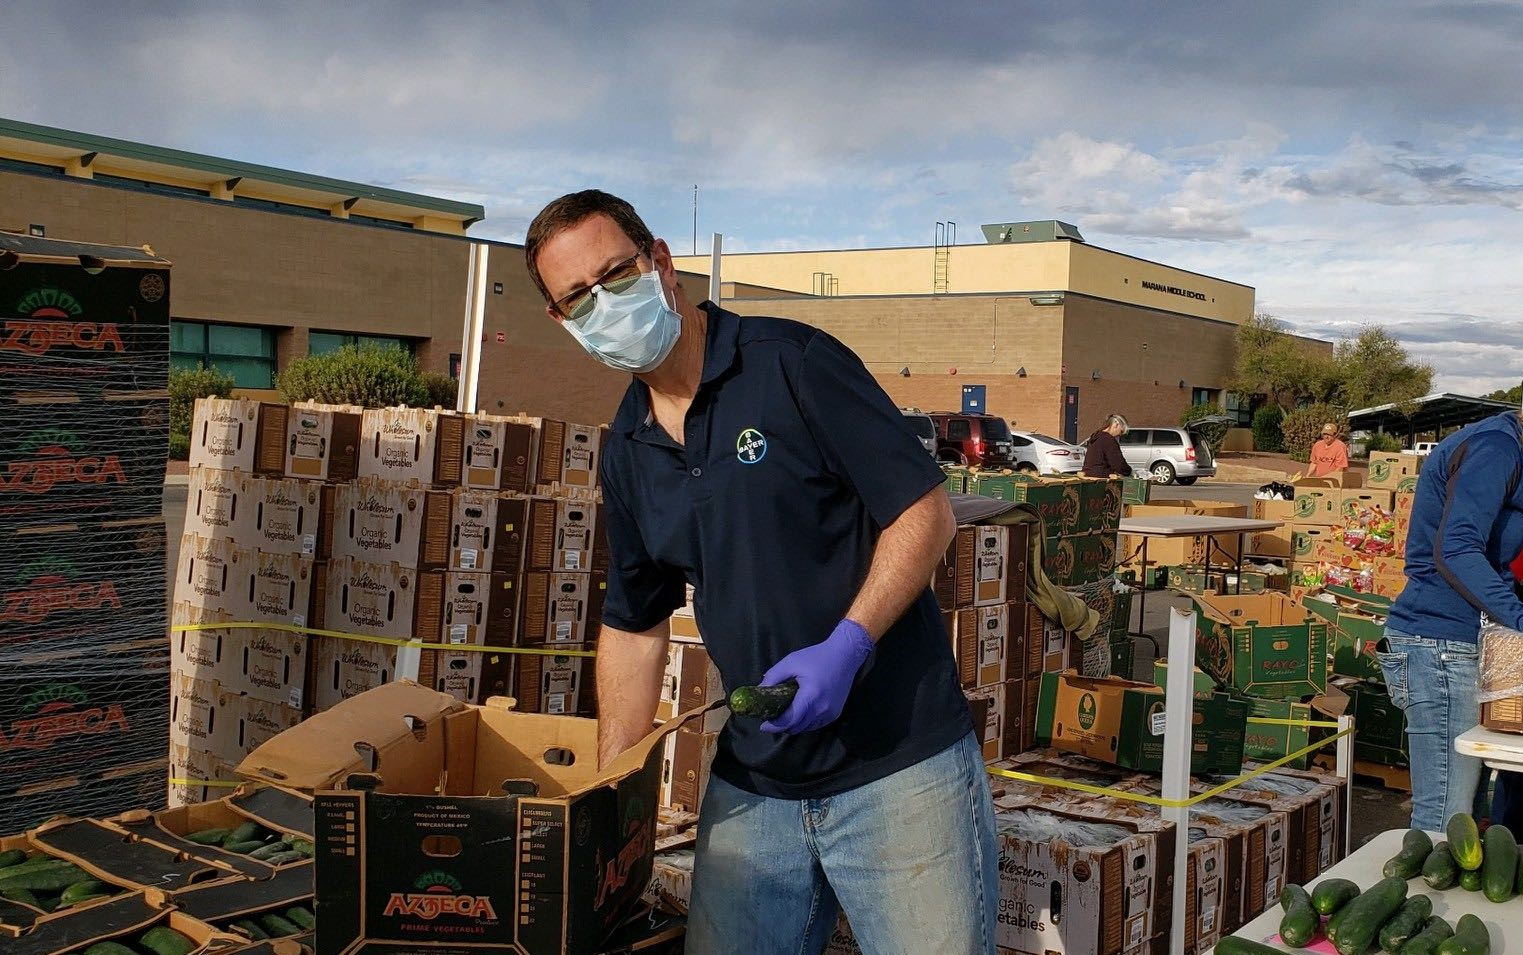 Brett Sowers, Bayer Marana employee, packing boxes of produce